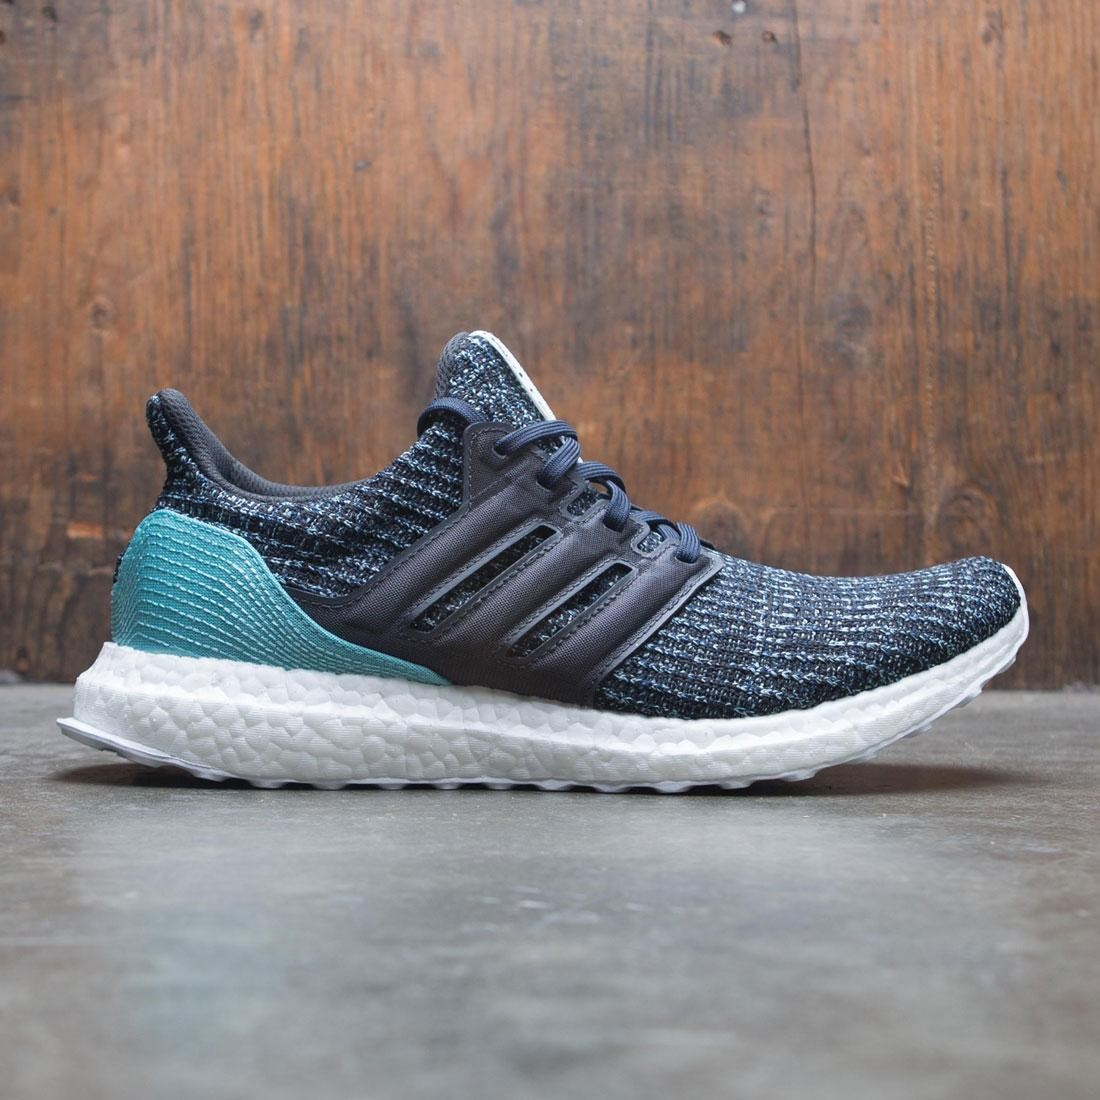 2a3f649da1d9 Adidas Men UltraBOOST Parley gray carbon blue spirit